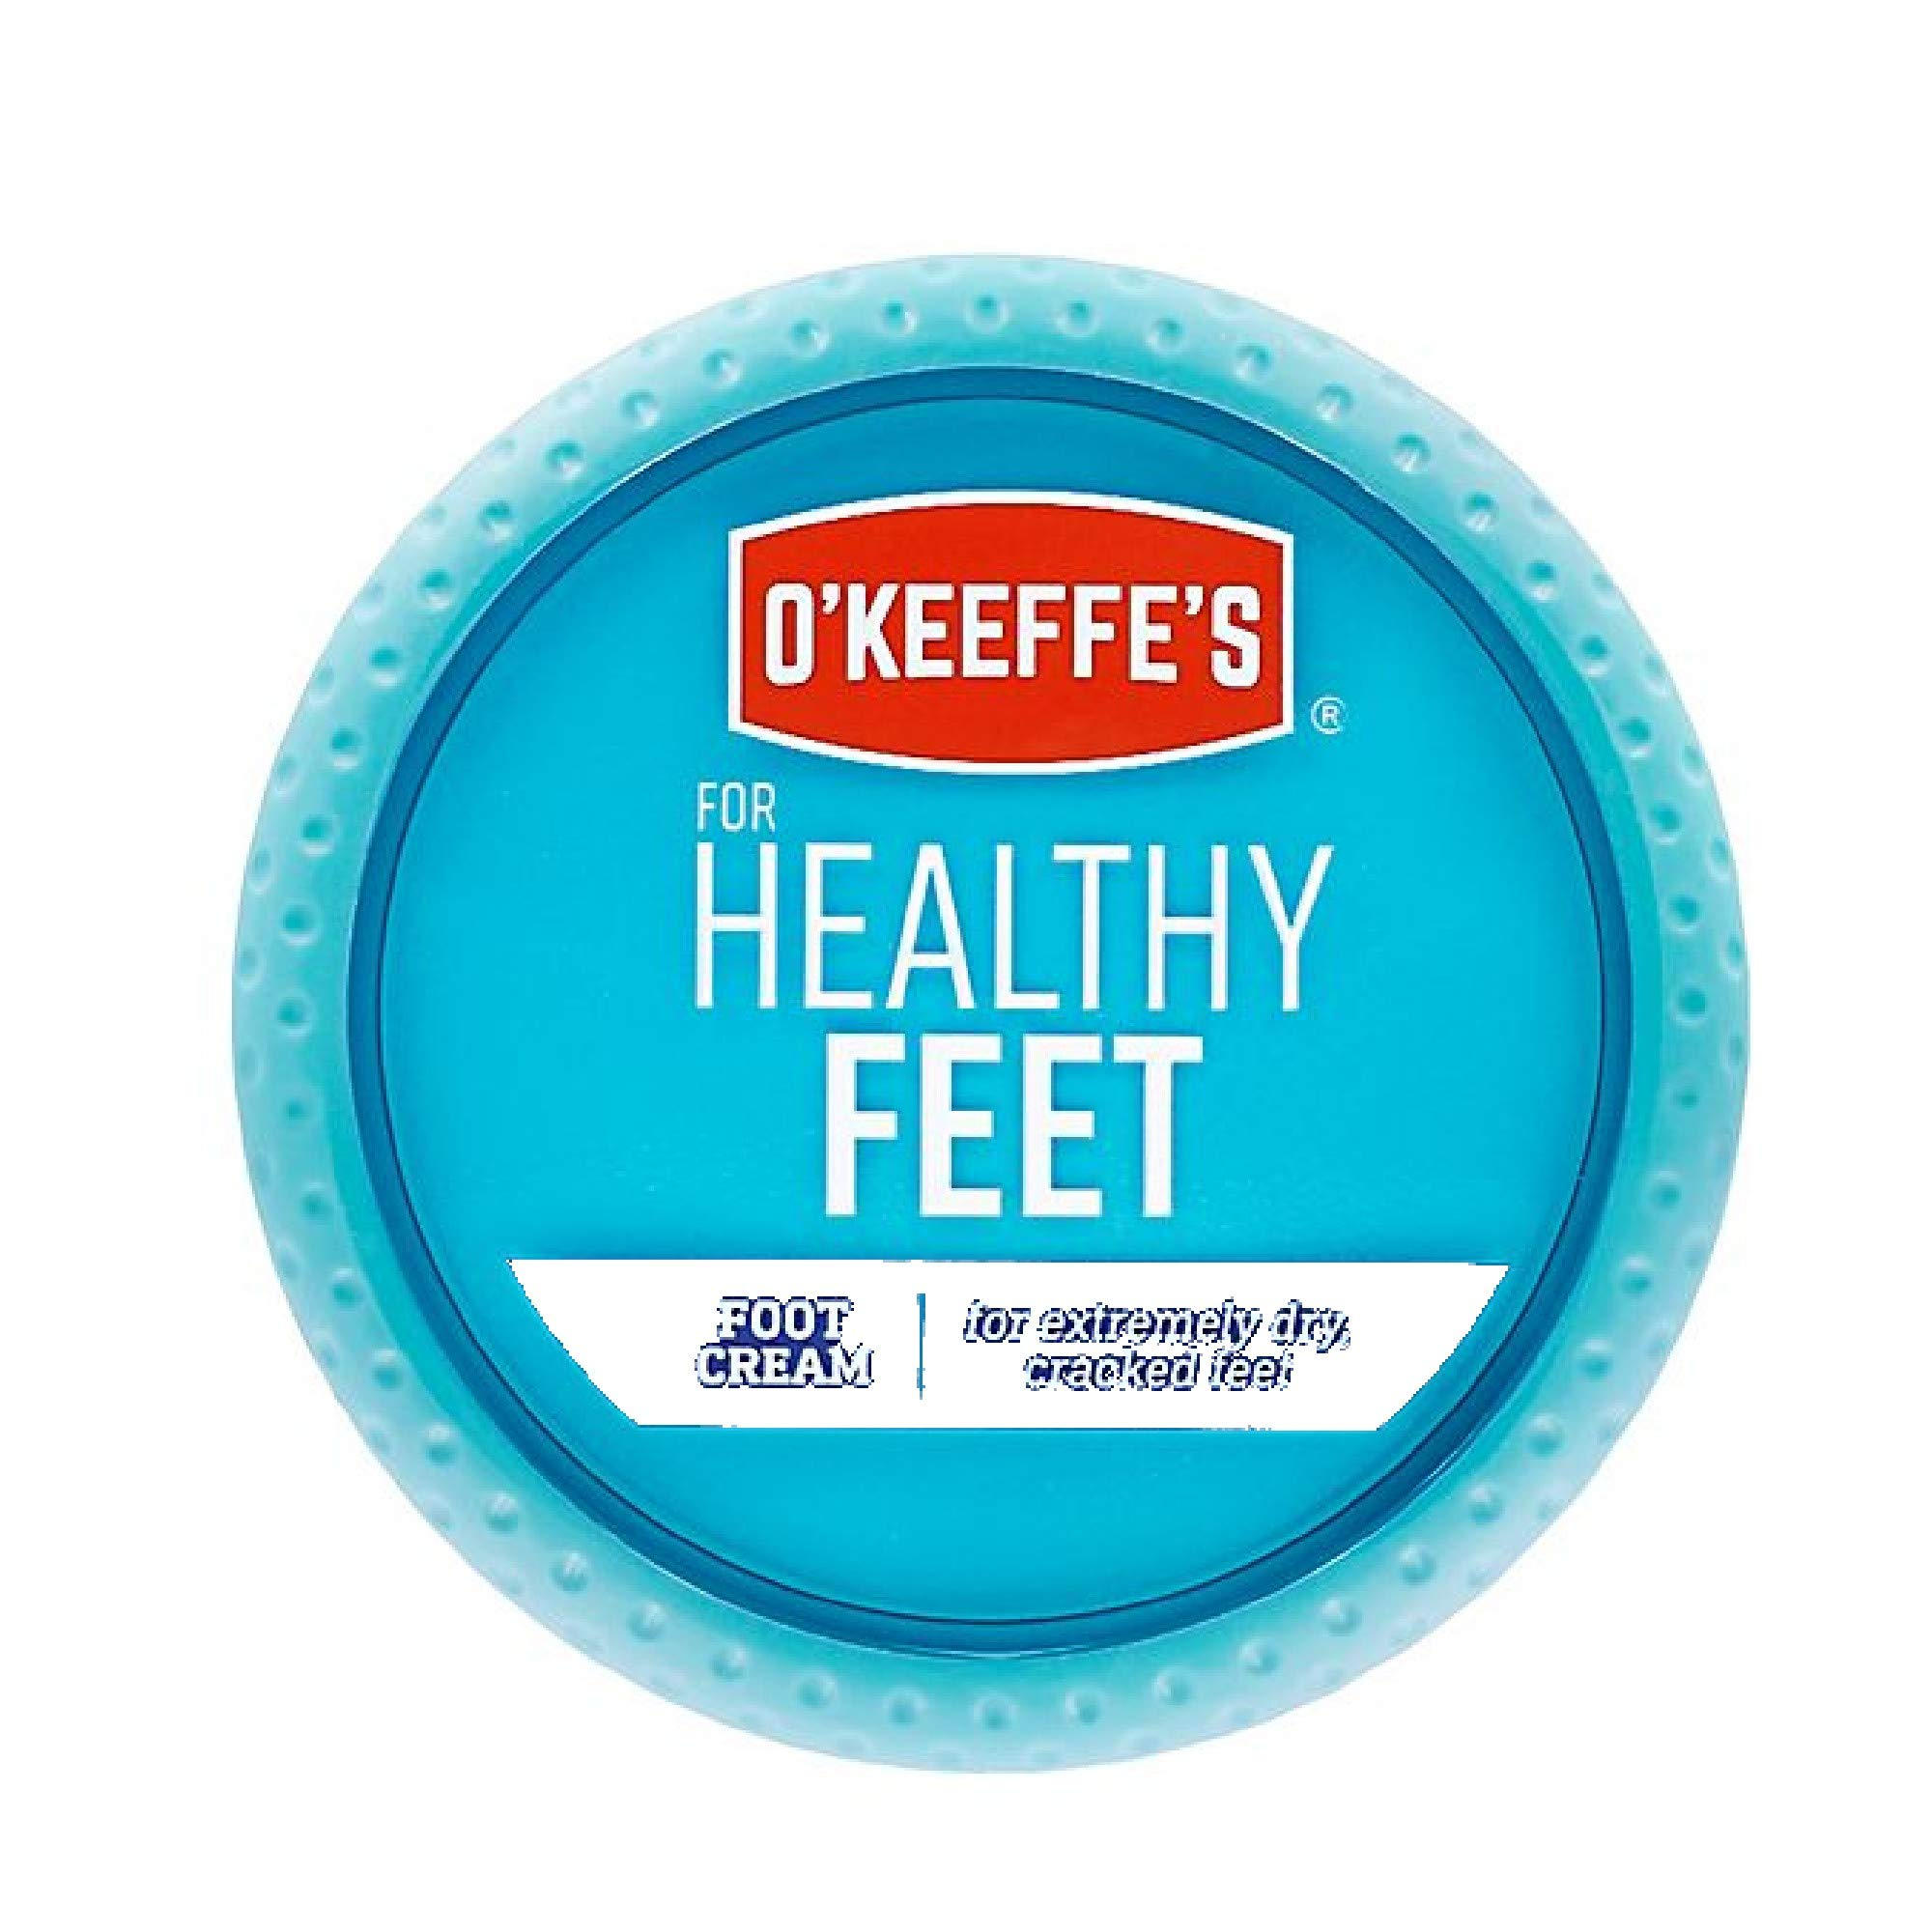 O Keeffe S Health Ft 2.7z Size 2.7z Okeeffe'S Healthy Feet Jar 2.7z